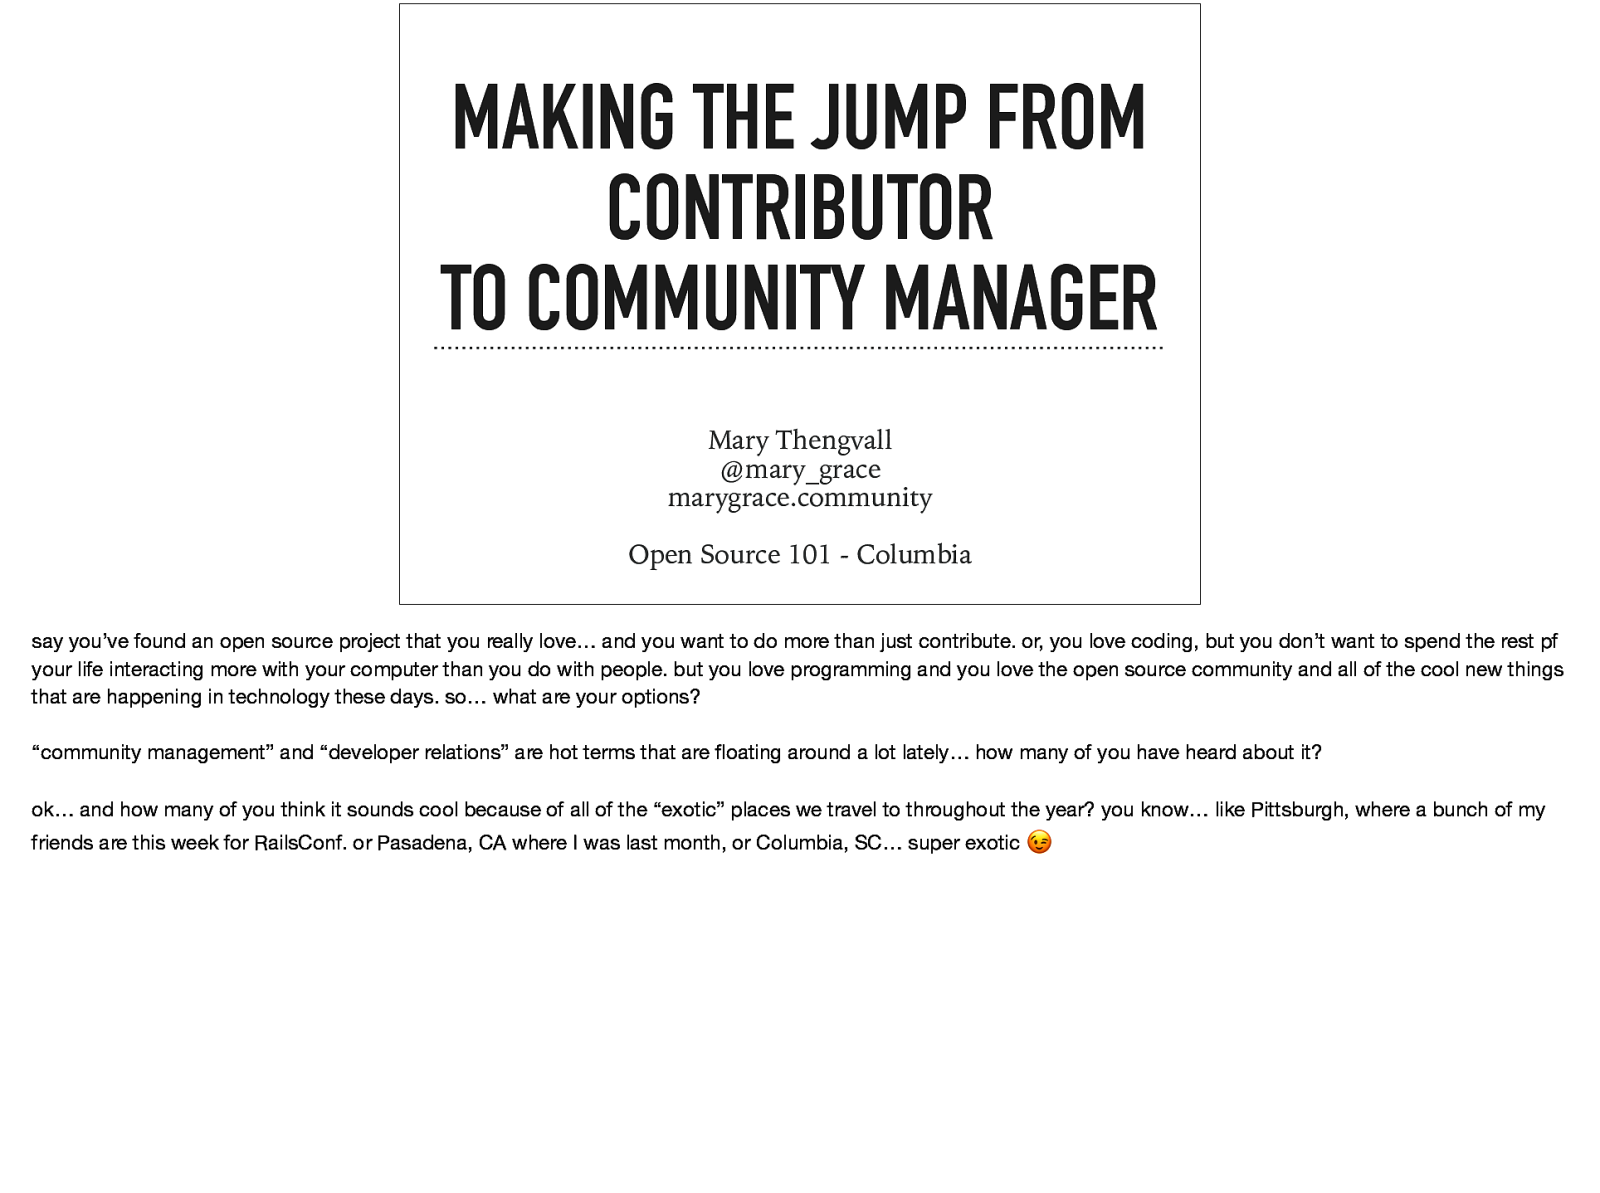 Making the Jump from Contributor to Community Manager